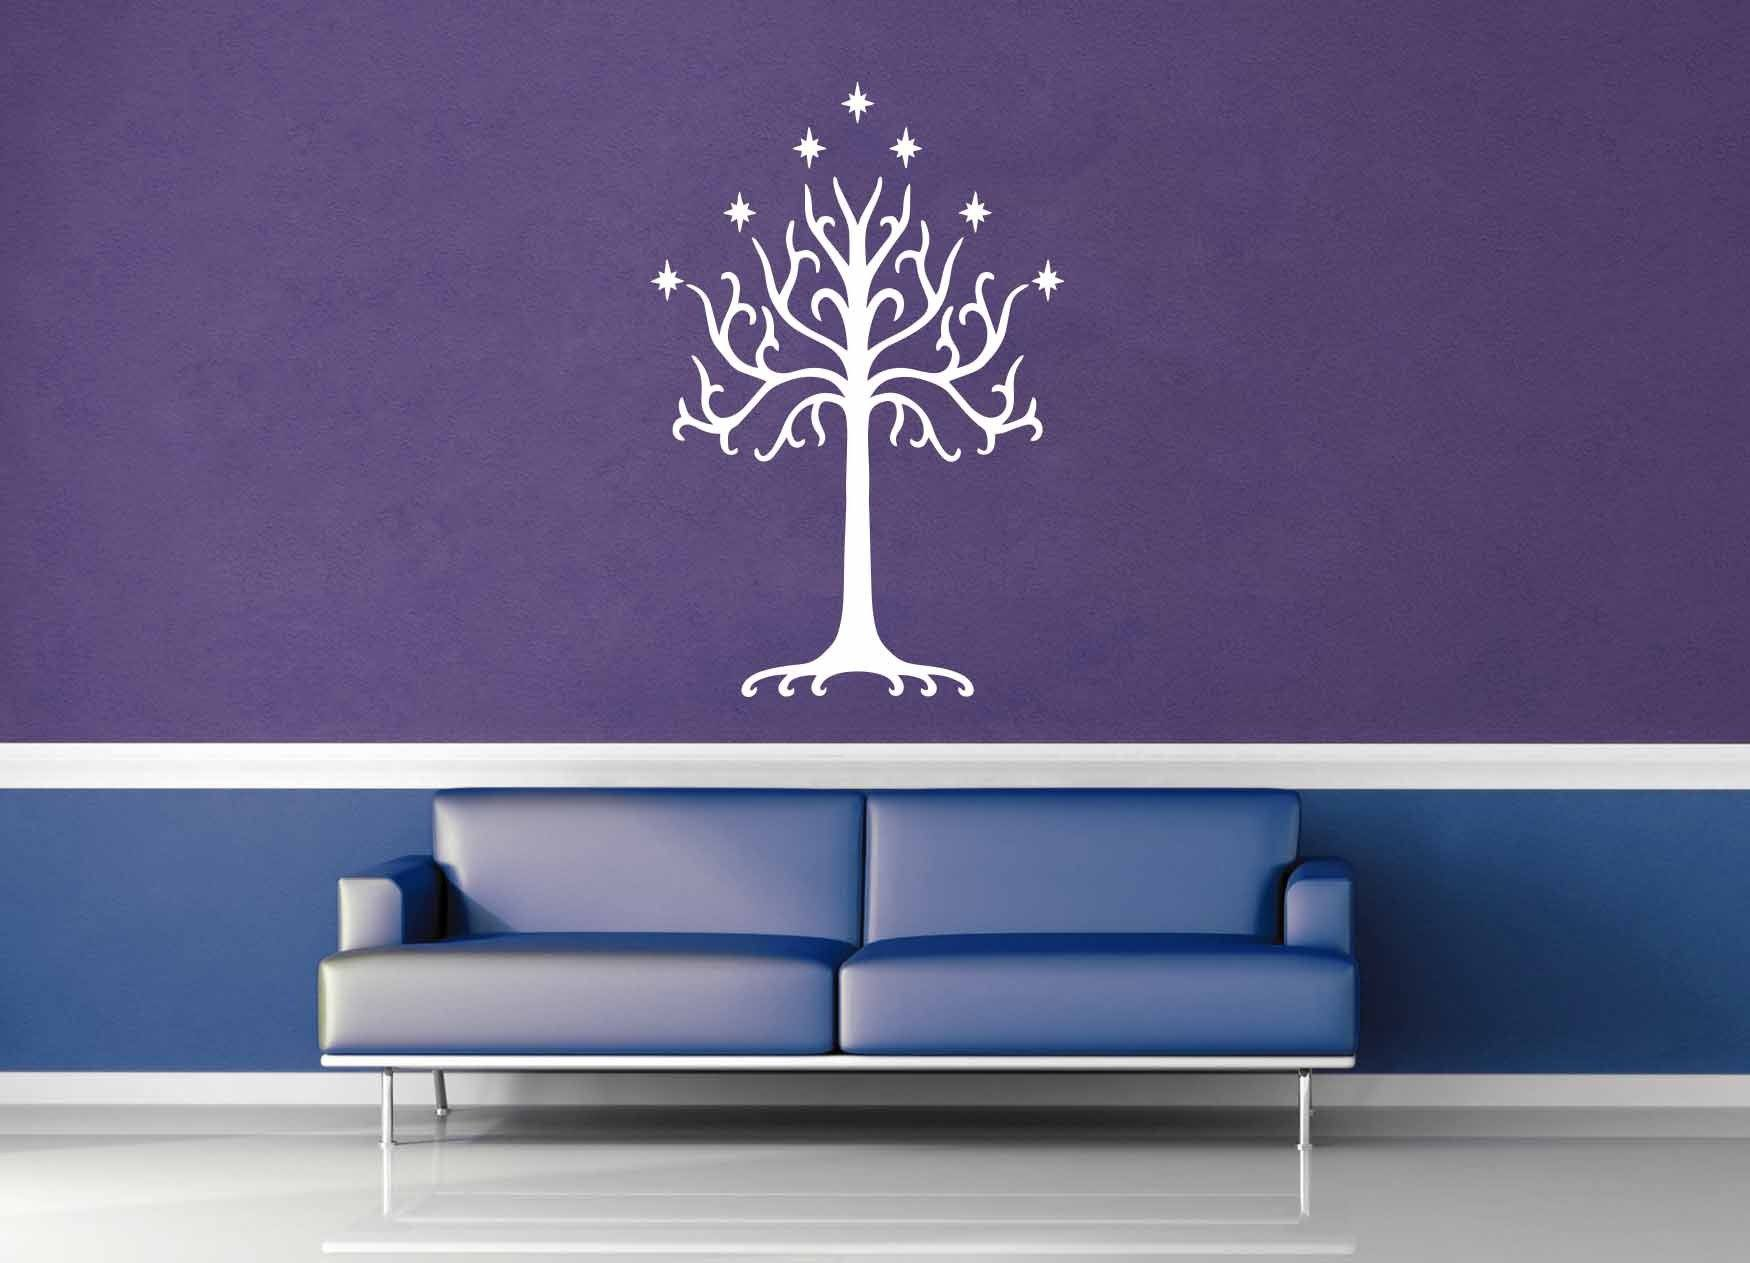 White Tree of Gondor - Tolkien - Wall Decal